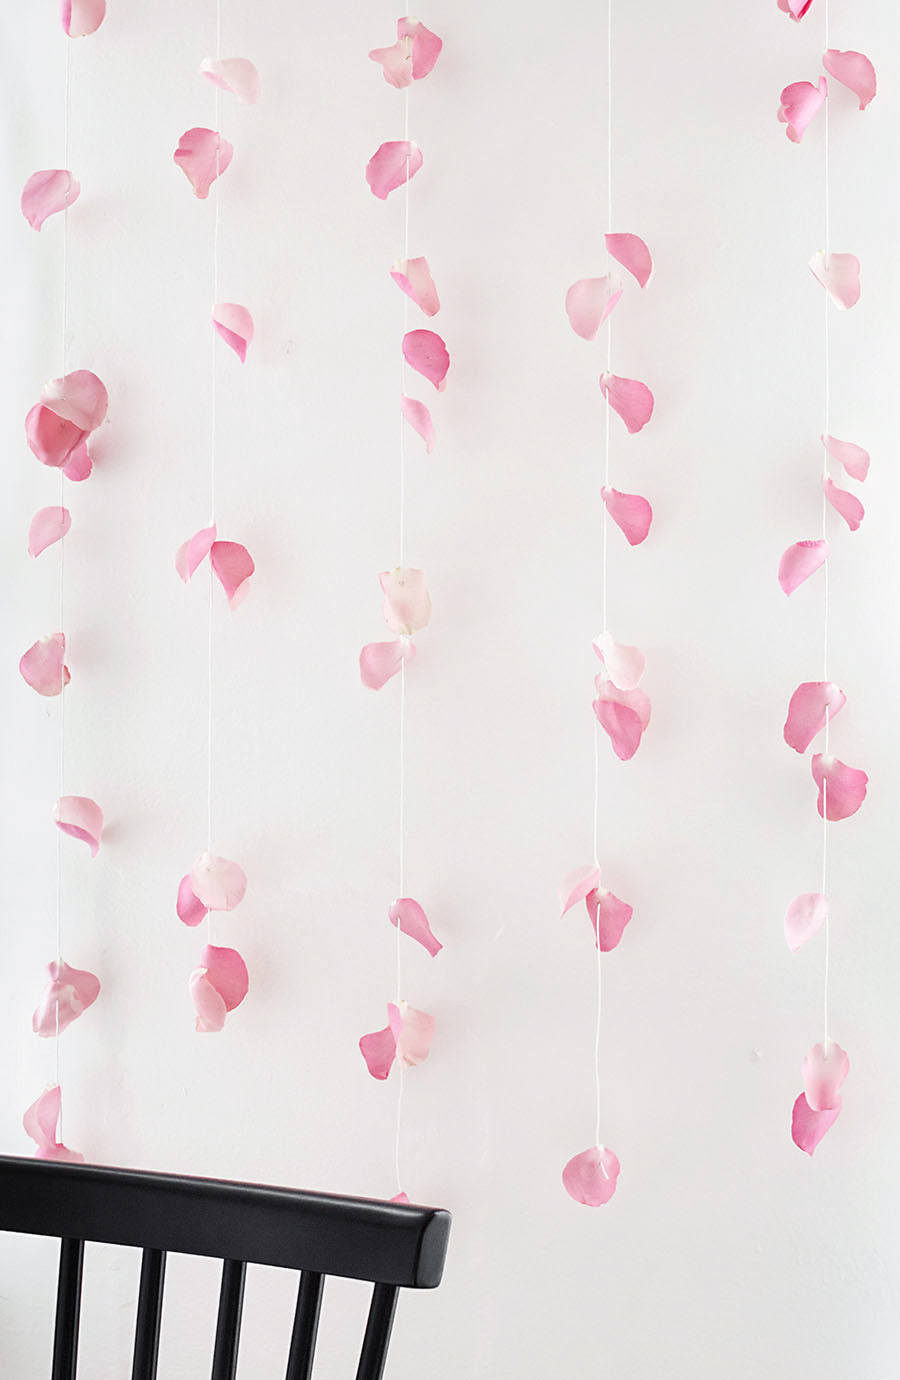 DIY fresh rose petal backdrop for taking pics